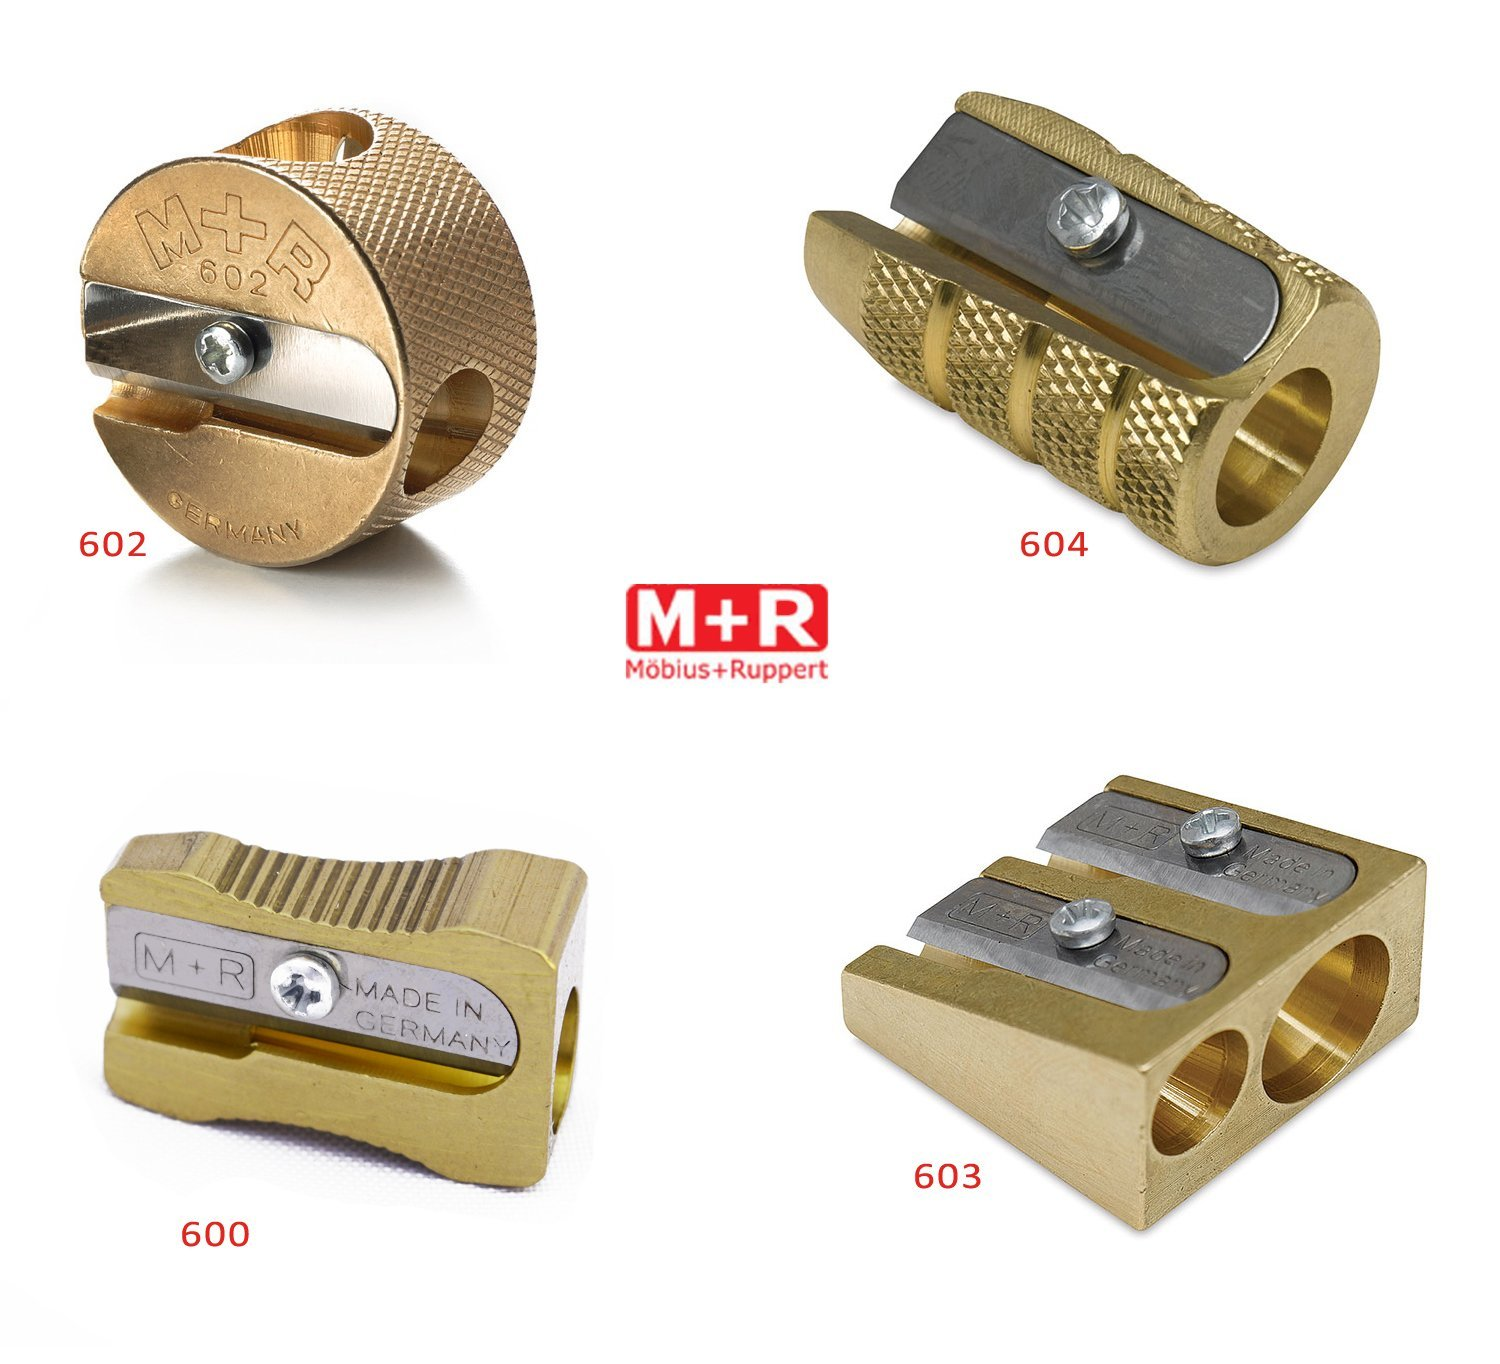 All 4 Styles of Mobius + Ruppert (M+R) Brass Pencil Sharpener - includes all 4 shapes! Made in Germany - finest in the world!